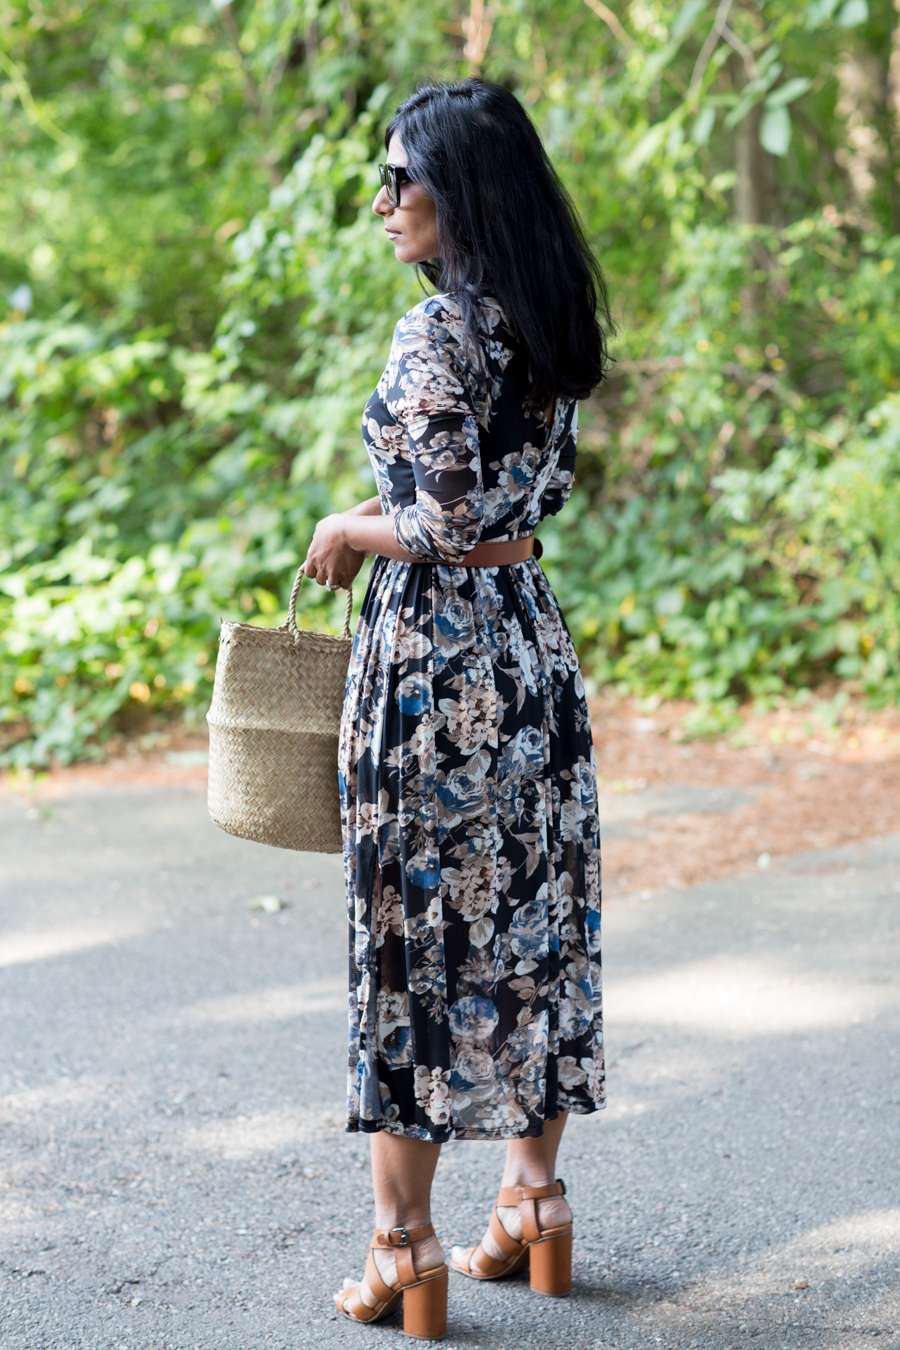 floral print, floral dress, fall style trends, basket bag, alexander mcqueen, nordstrom rack, affordable style, petite fashion, petite blogger, boston stylist, midi dress